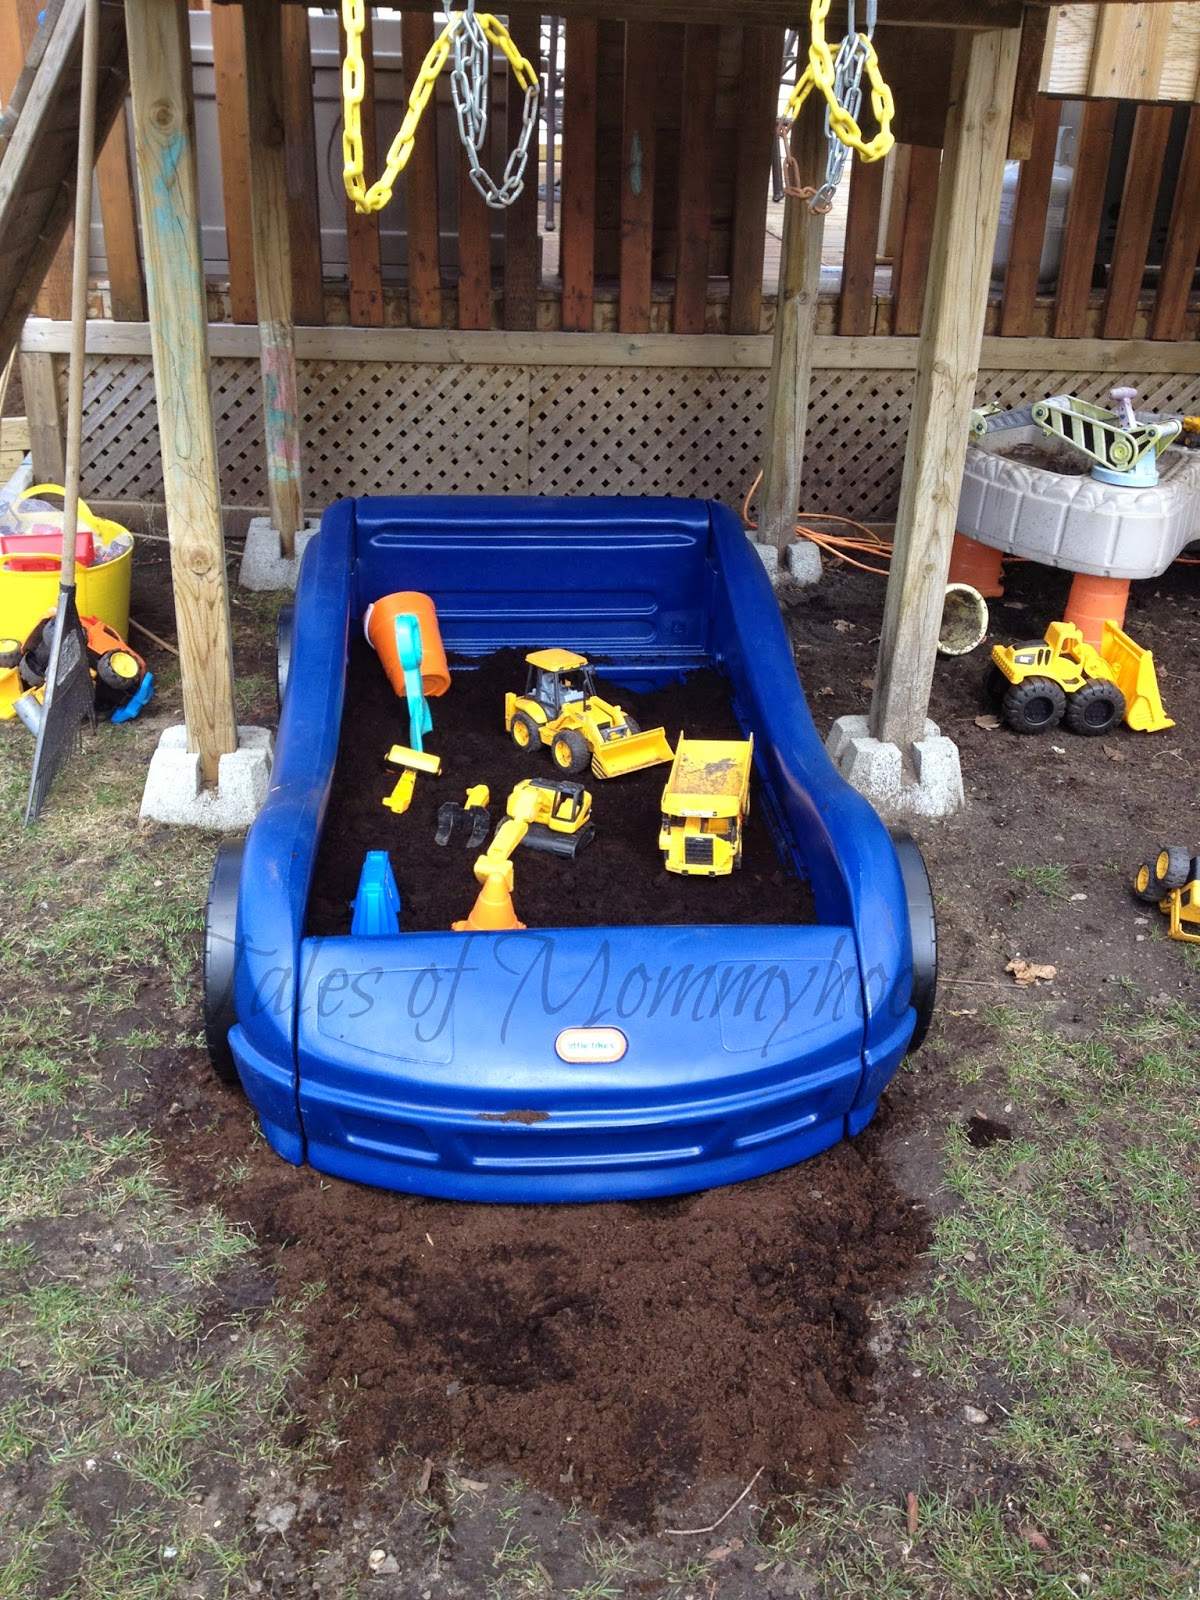 little tikes, car bed, race car, bed frame, sand box, dirt box, outdoor fun, DIY